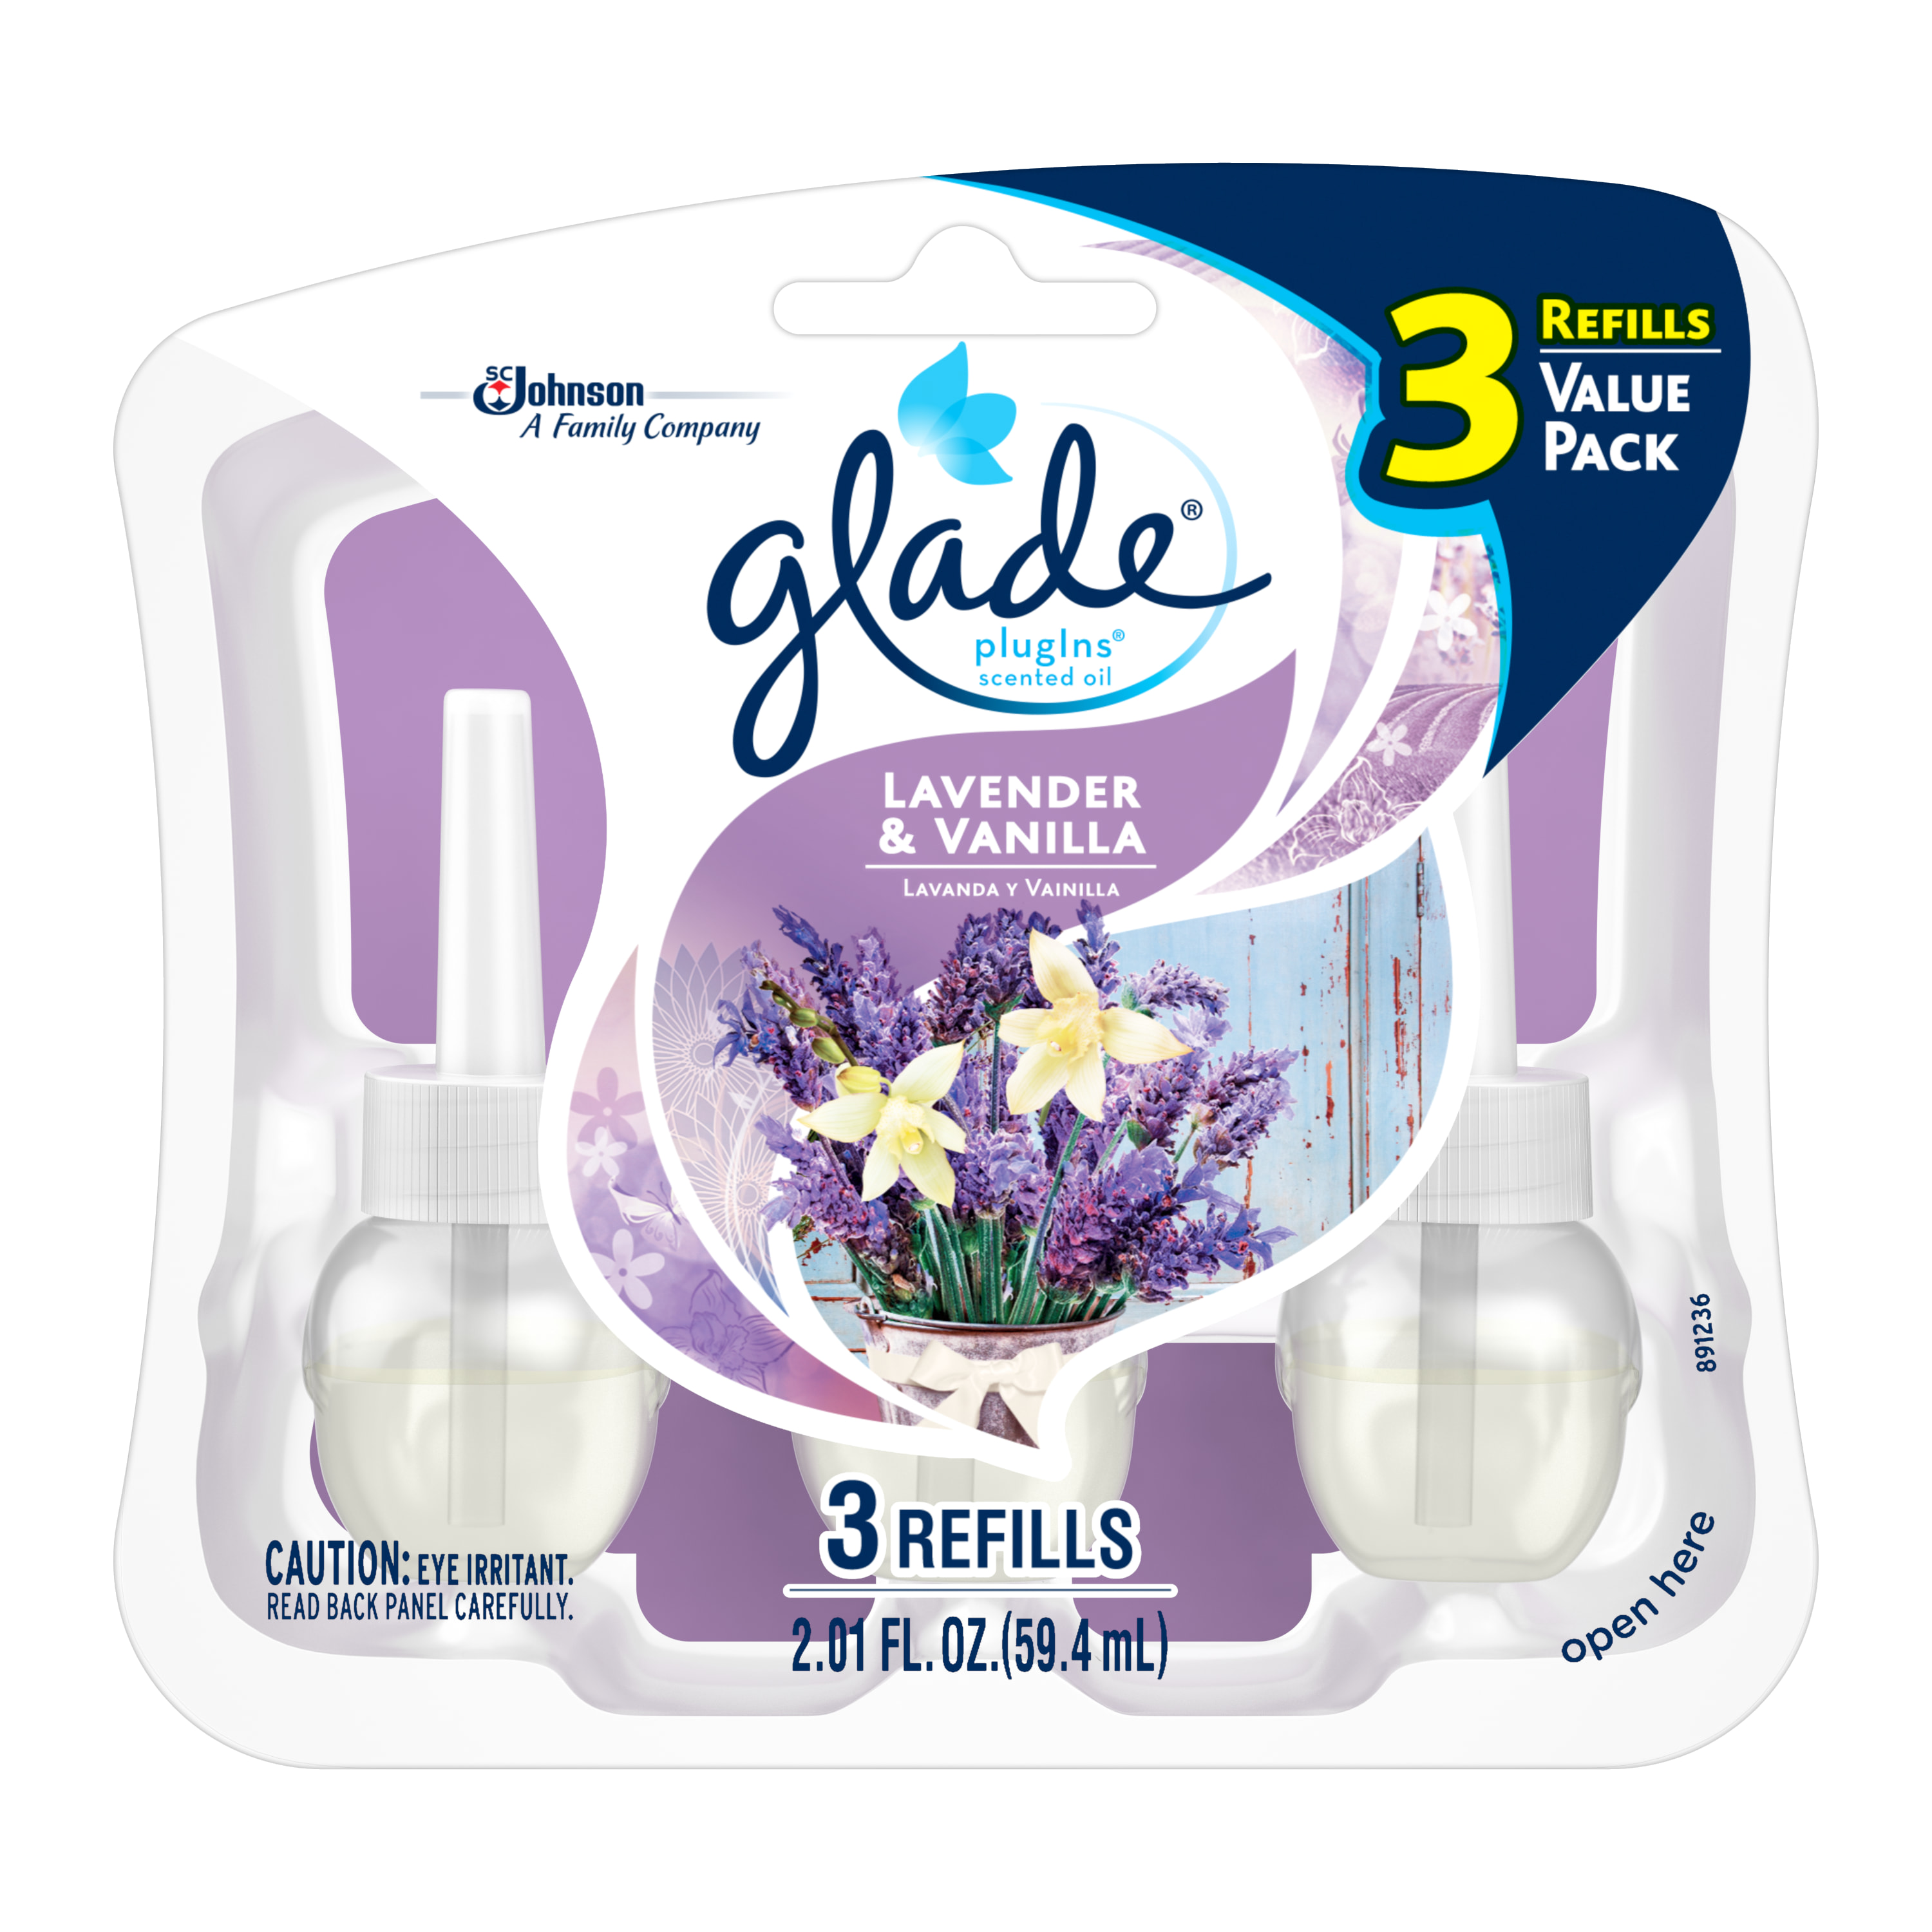 Glade PlugIns Scented Oil Air Freshener Refill, Lavender & Vanilla, 3 count, 2.01 Ounces